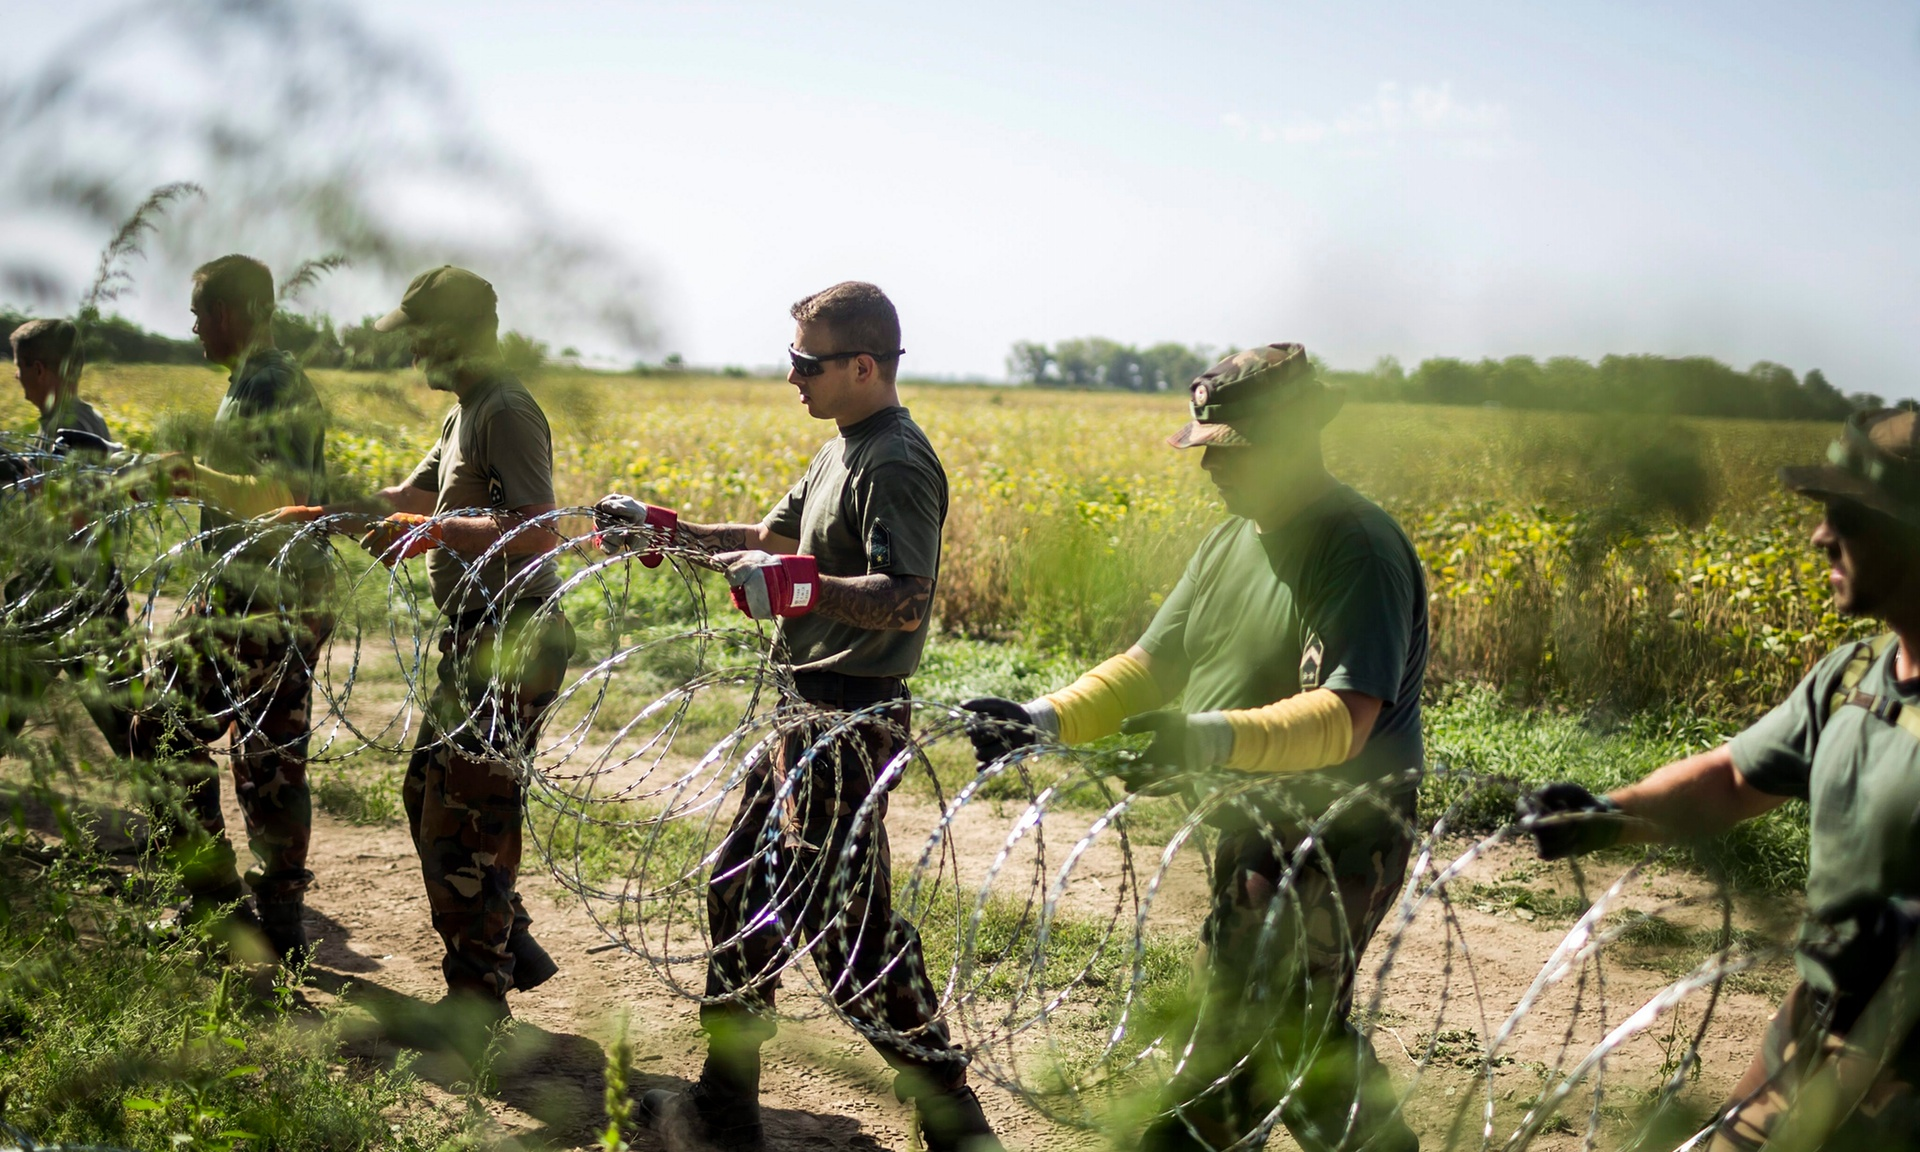 Soldiers set up a razor-wire fence to keep out refugees, on Hungary's southern border with Croatia. Photograph: Balazs Mohai/EPA